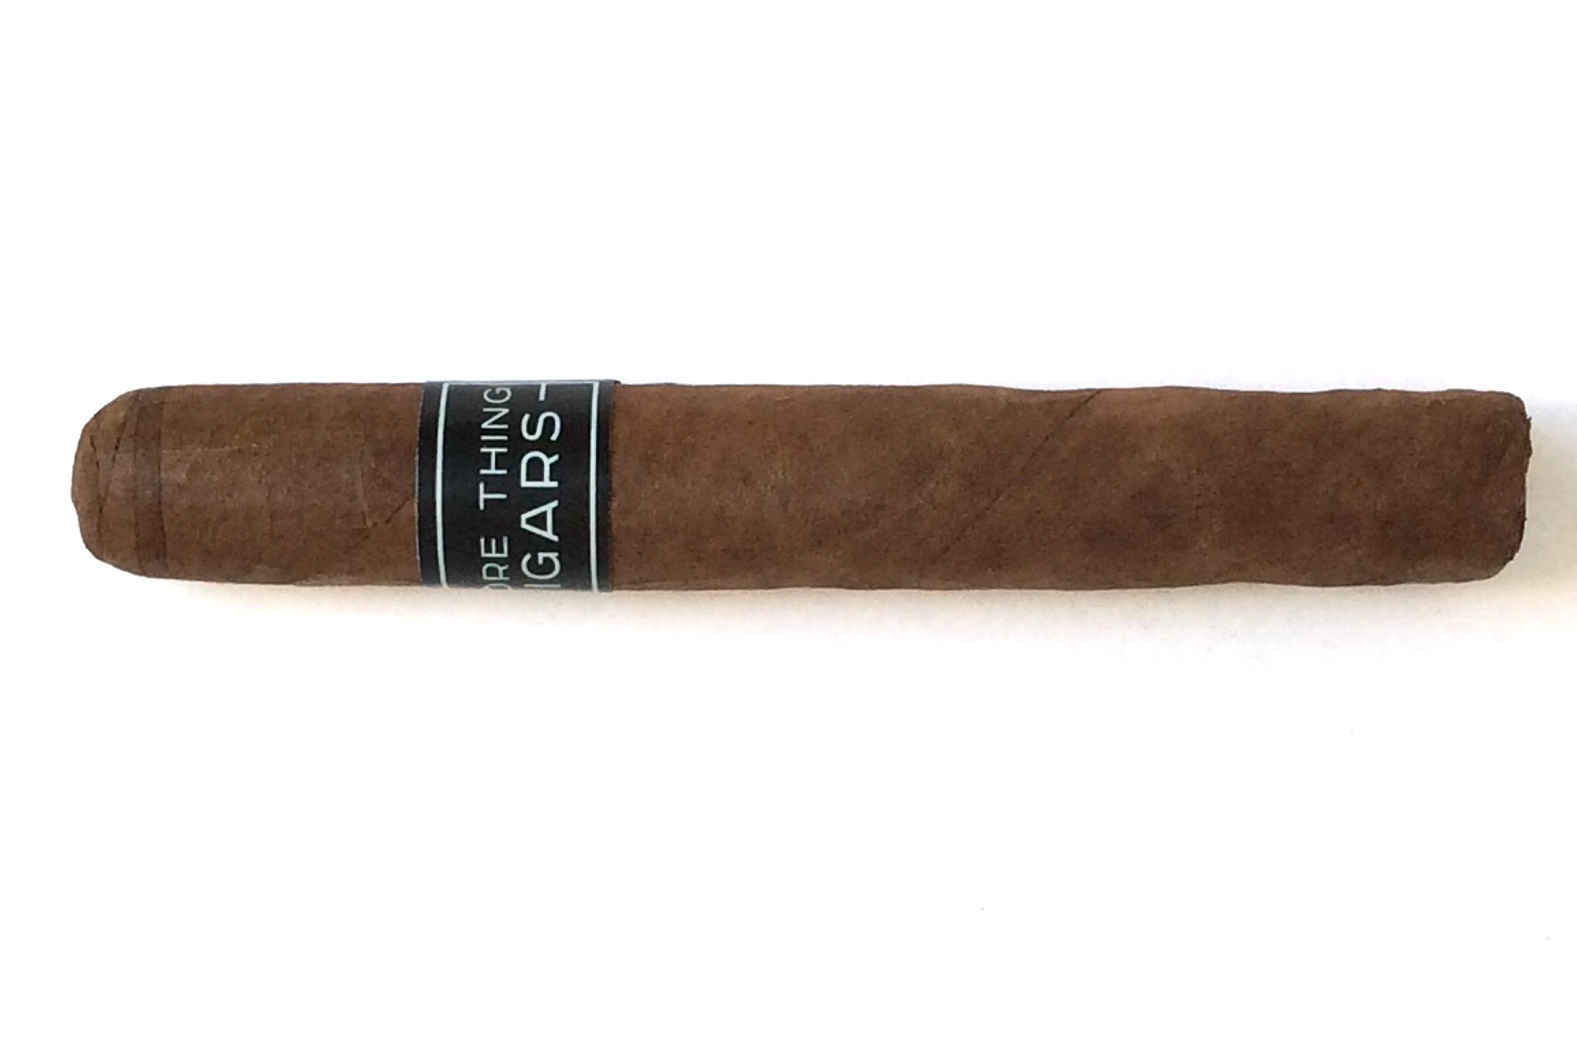 Cigar Review: Crowned Heads Shore Thing Exclusive